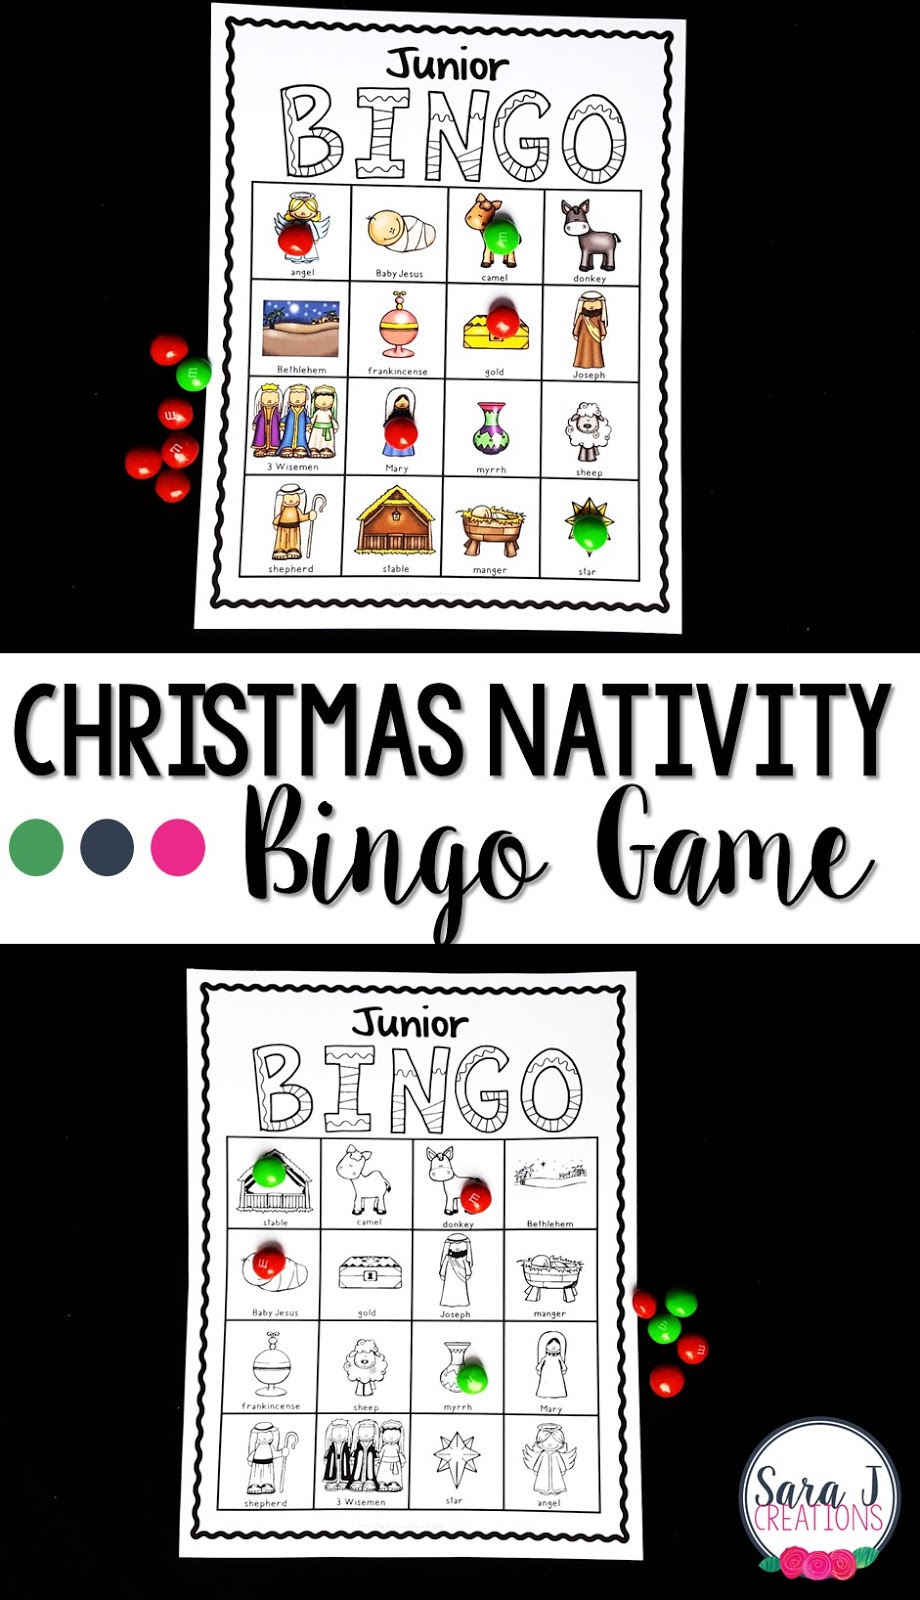 Christmas nativity bingo is the perfect game for children to play at parties, school and home leading up to Christmas day.  A great way to review the story of the birth of Jesus.